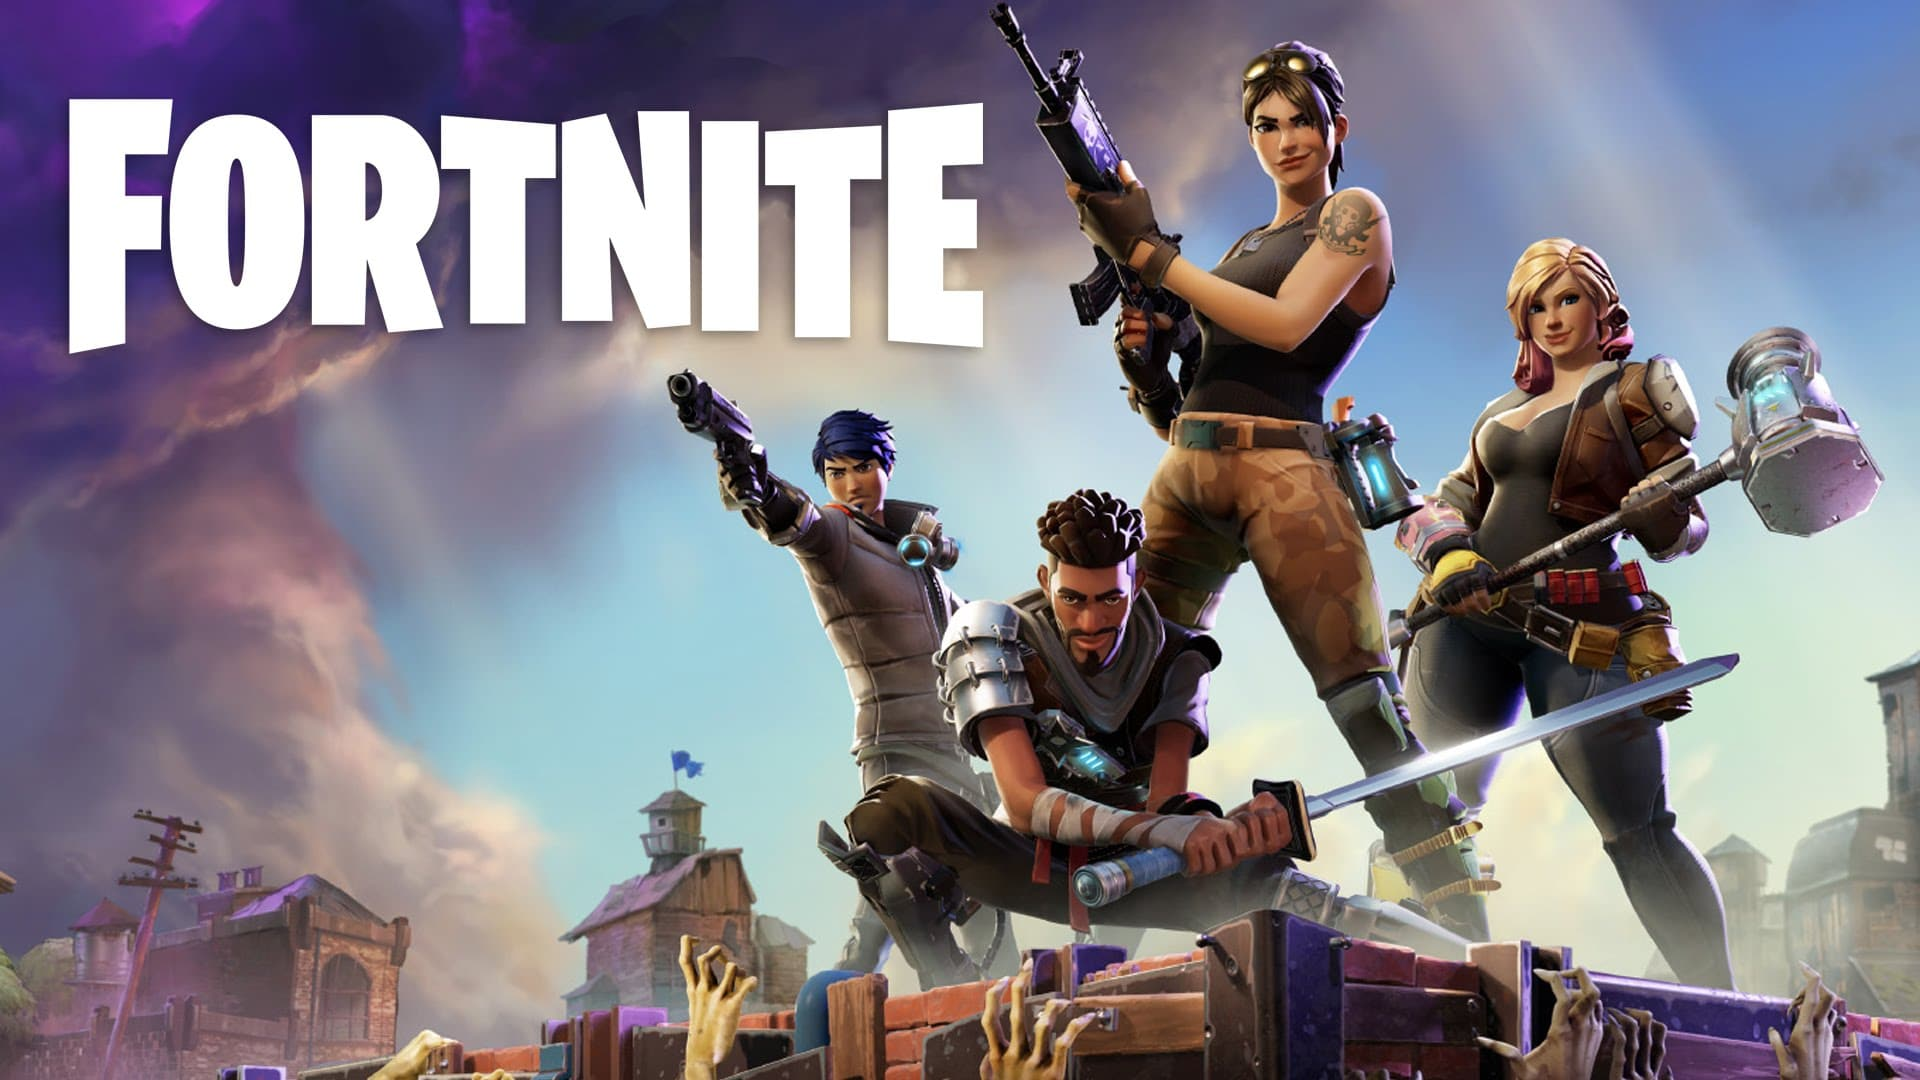 Fortnite – 2 miljoen+ downloads